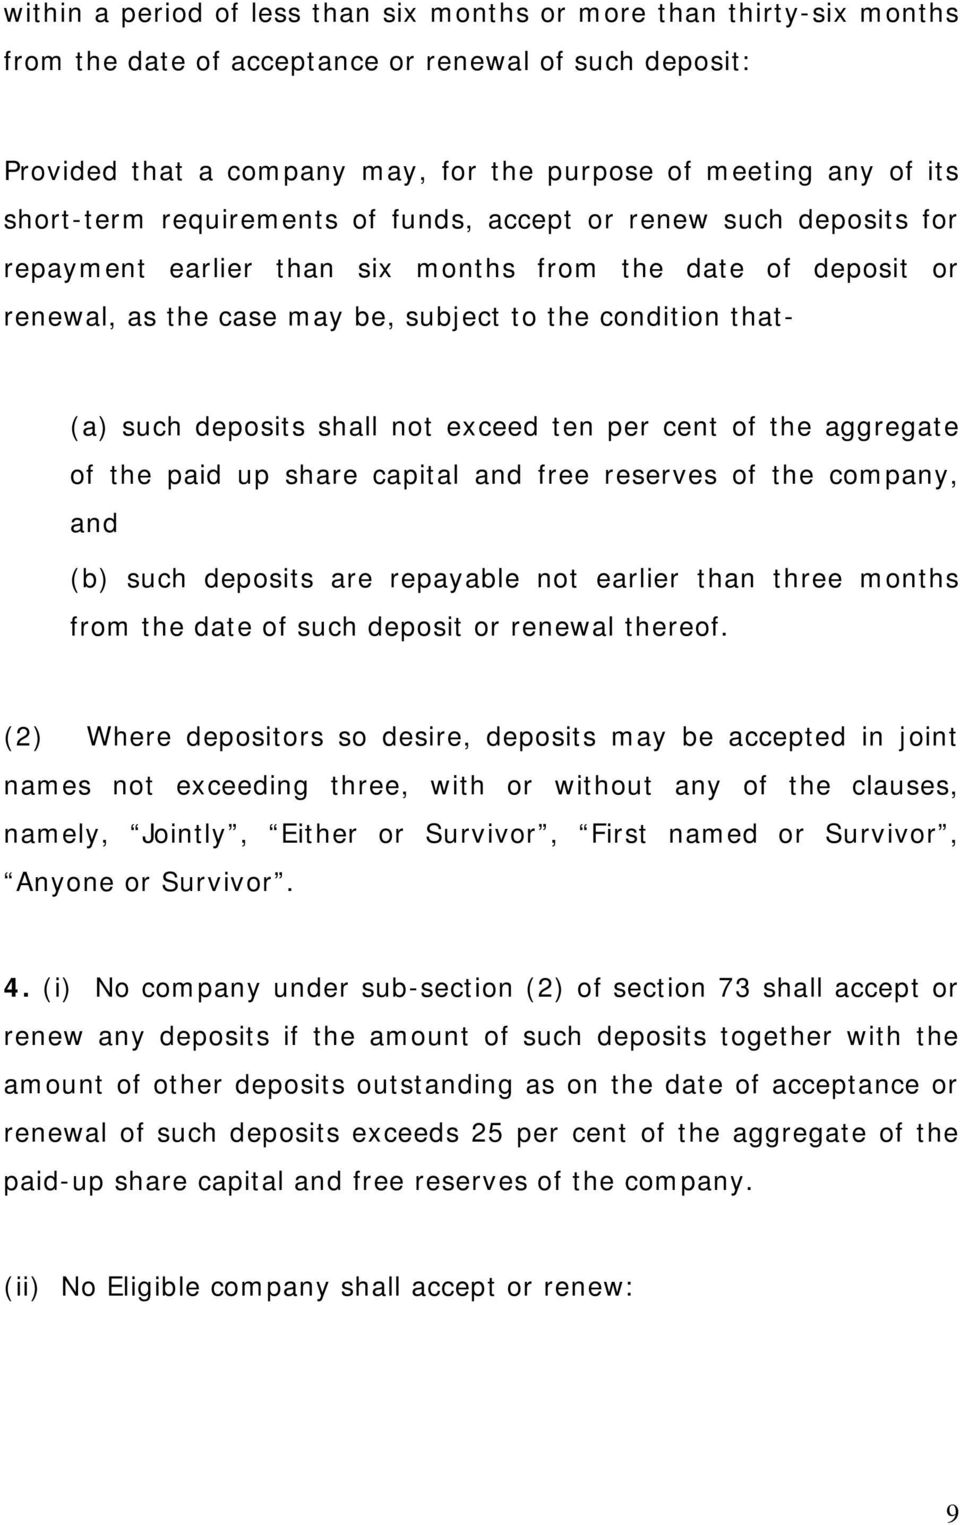 deposits shall not exceed ten per cent of the aggregate of the paid up share capital and free reserves of the company, and (b) such deposits are repayable not earlier than three months from the date